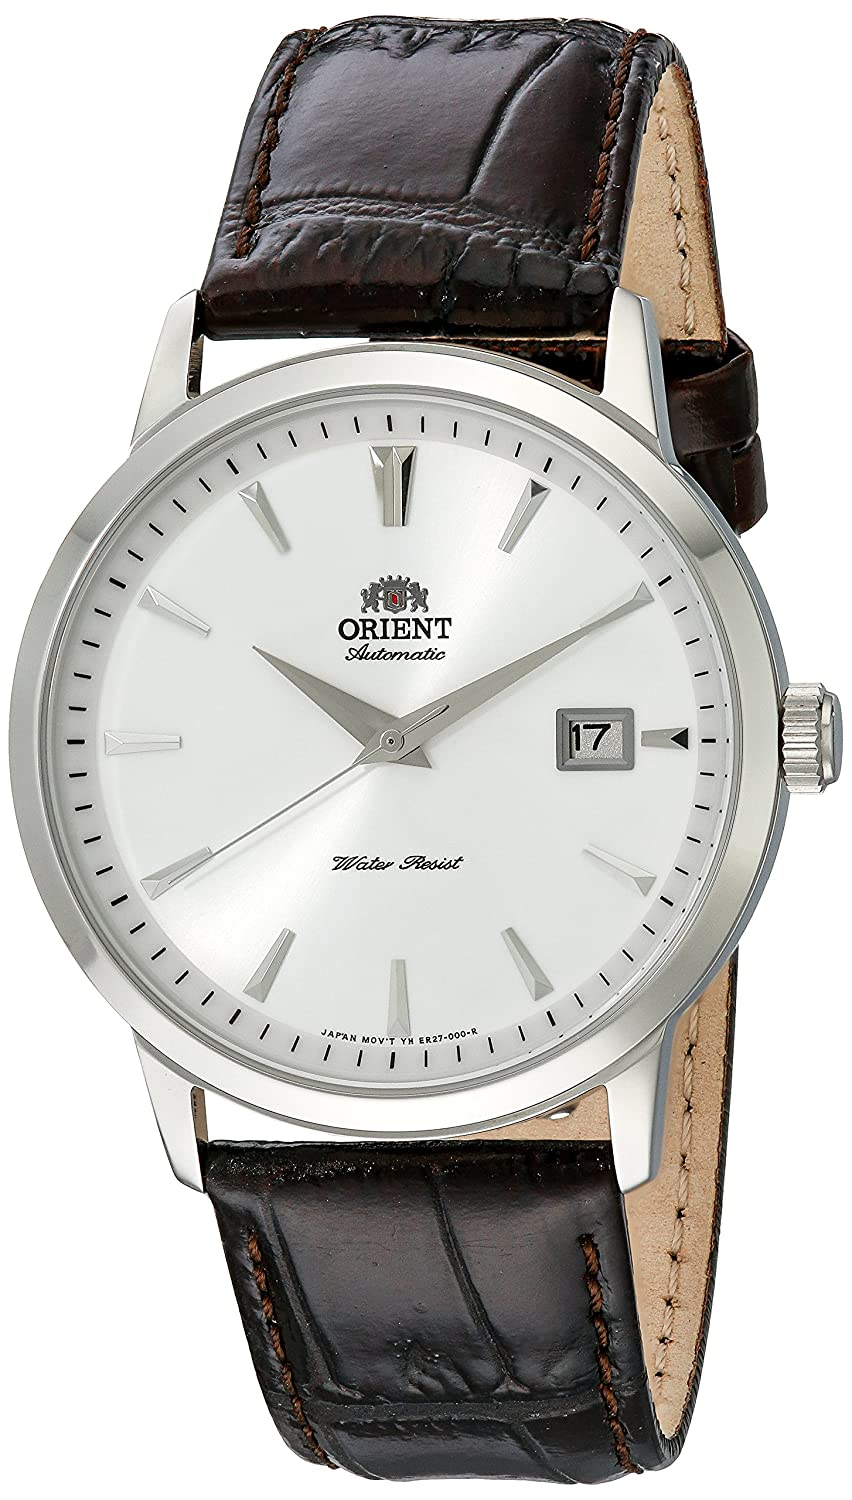 dd8435a834e Amazon.com  Orient Men s ER27007W Classic Automatic Watch  Watches